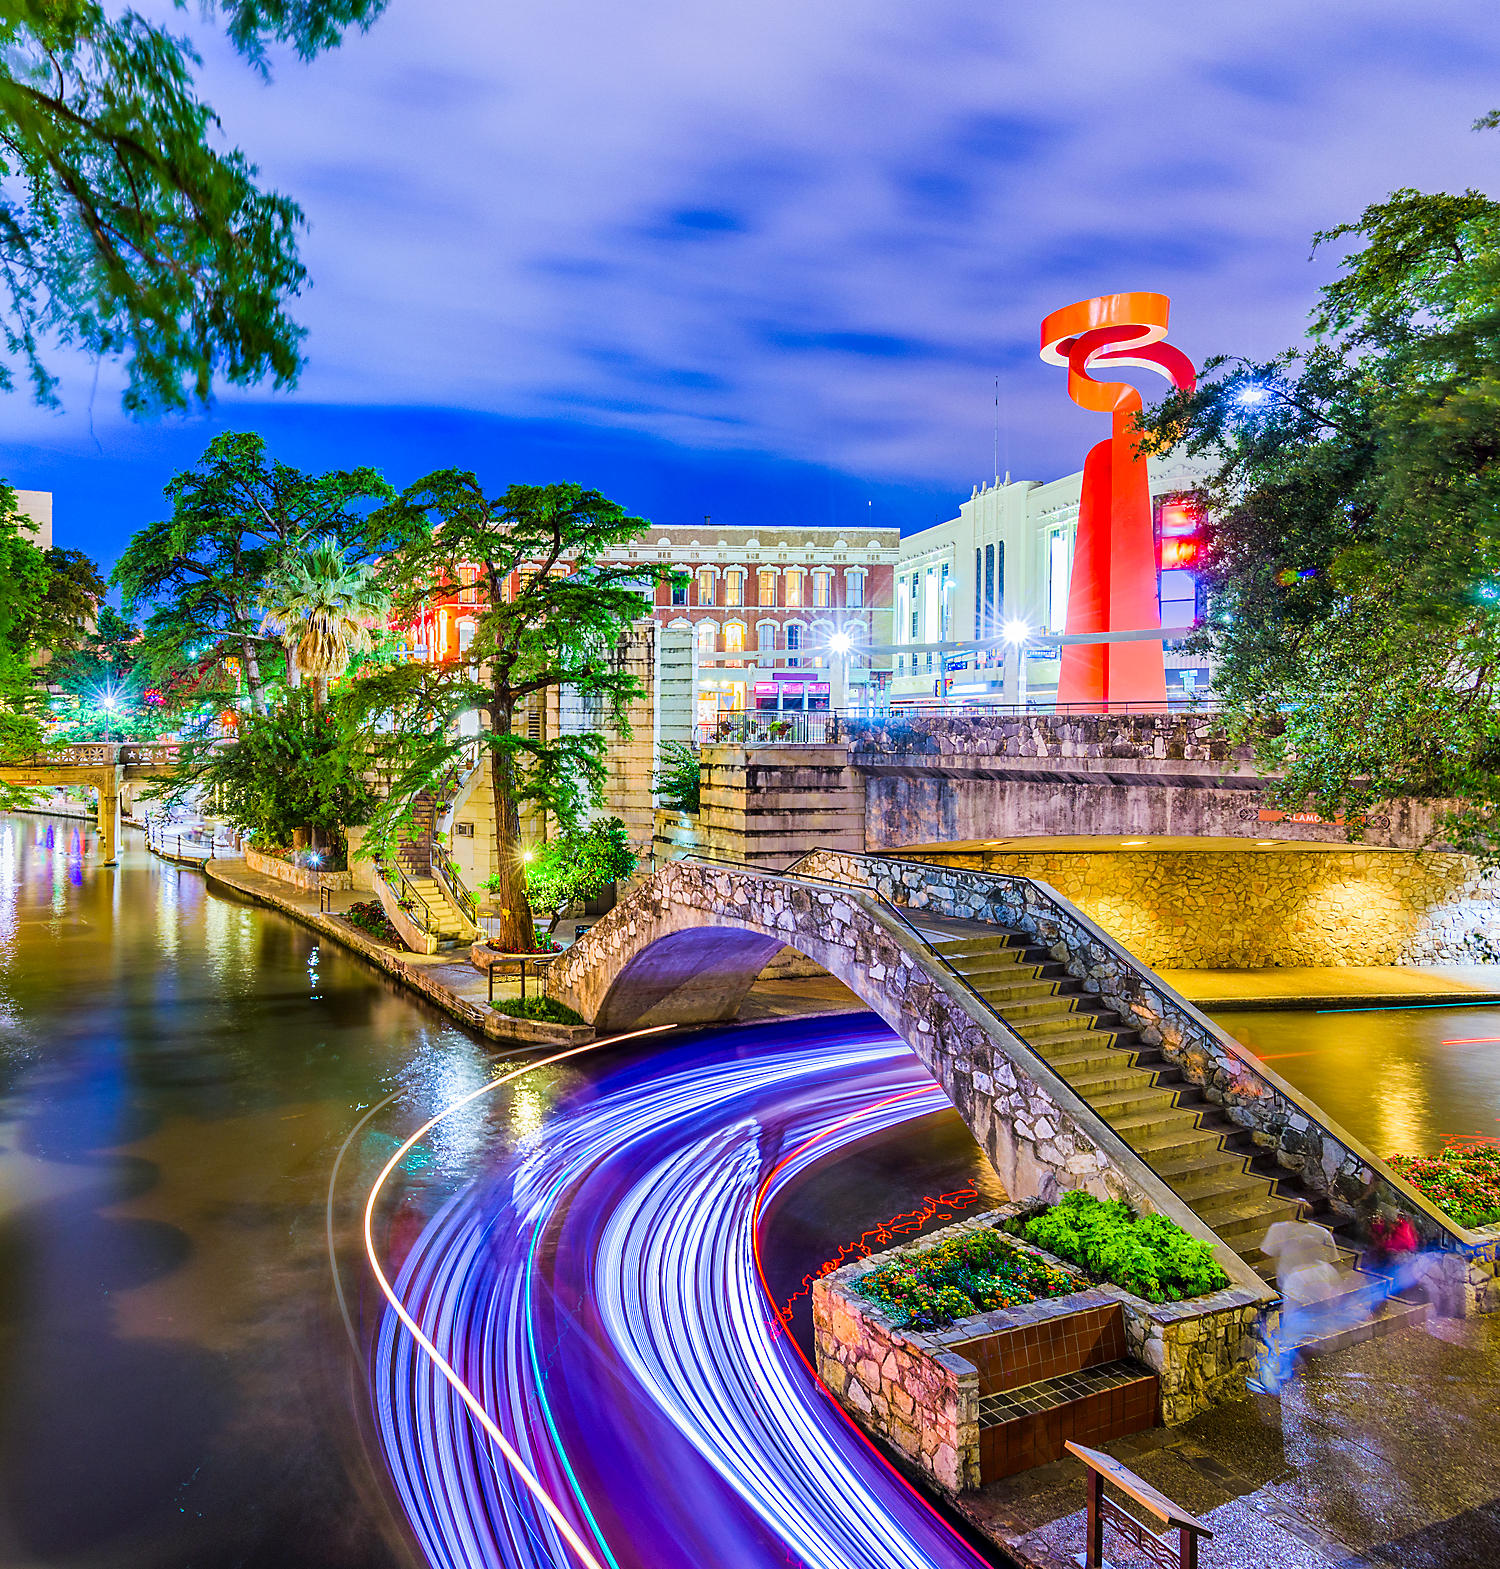 Vacation In San Antonio, Texas